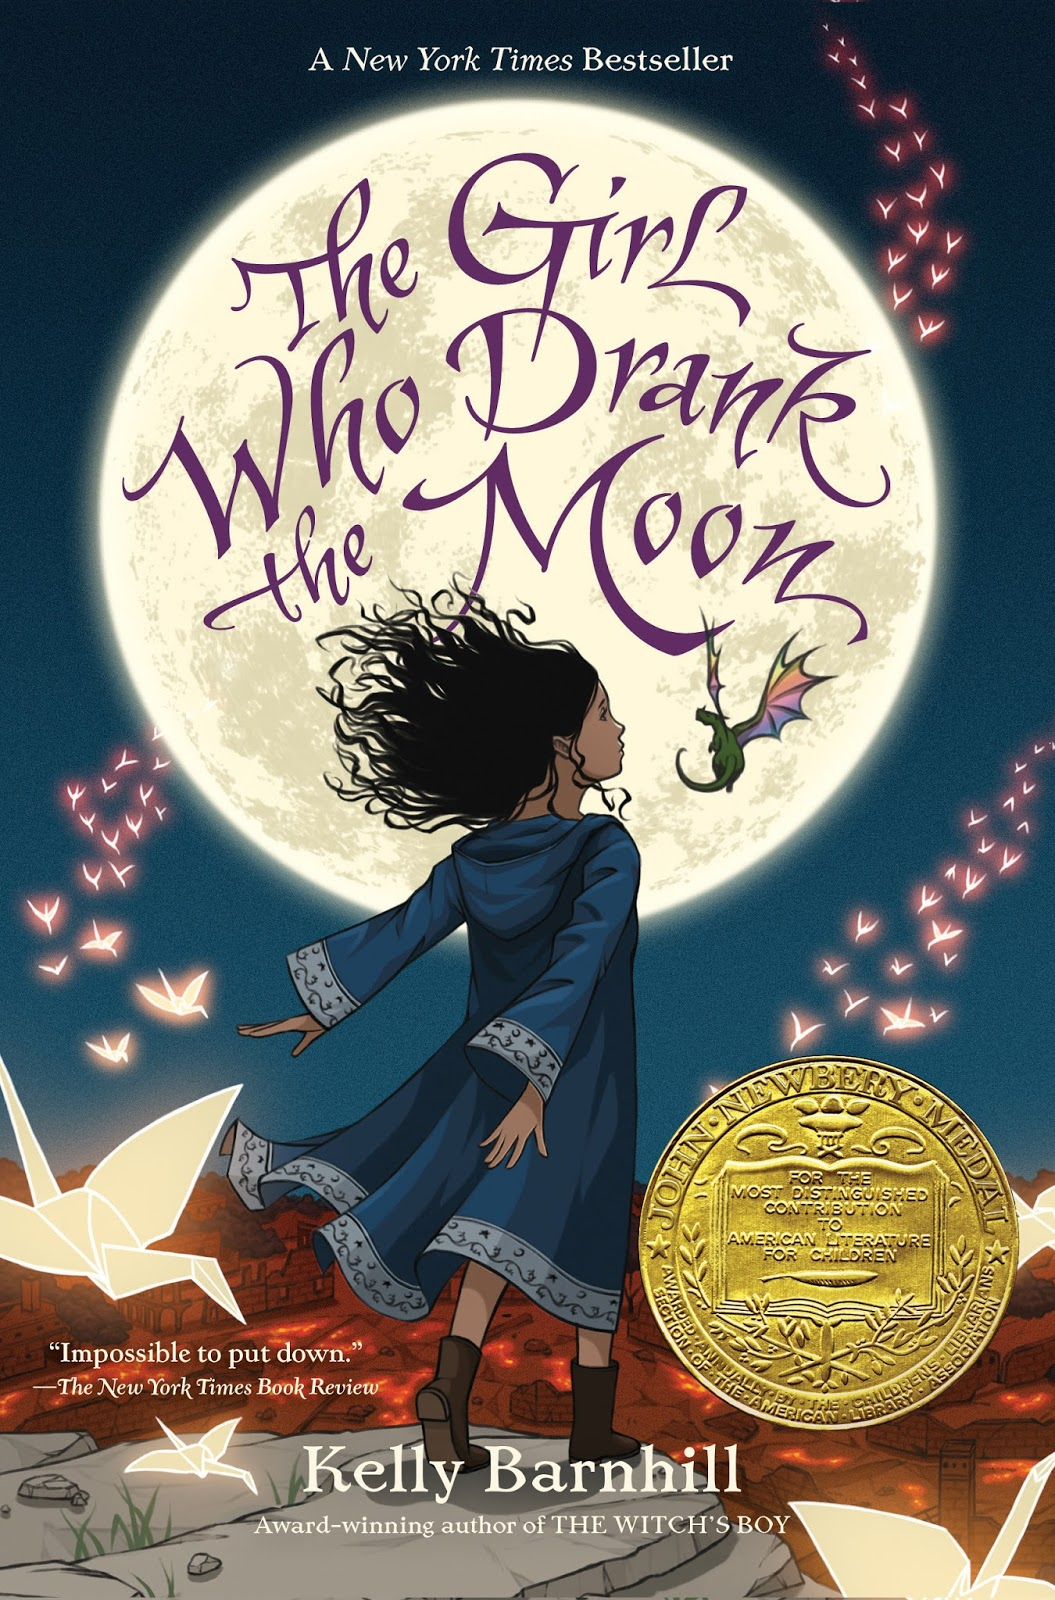 The Girl Who Drank the Moon by Kelly Barnhill, 400 pp, RL 4